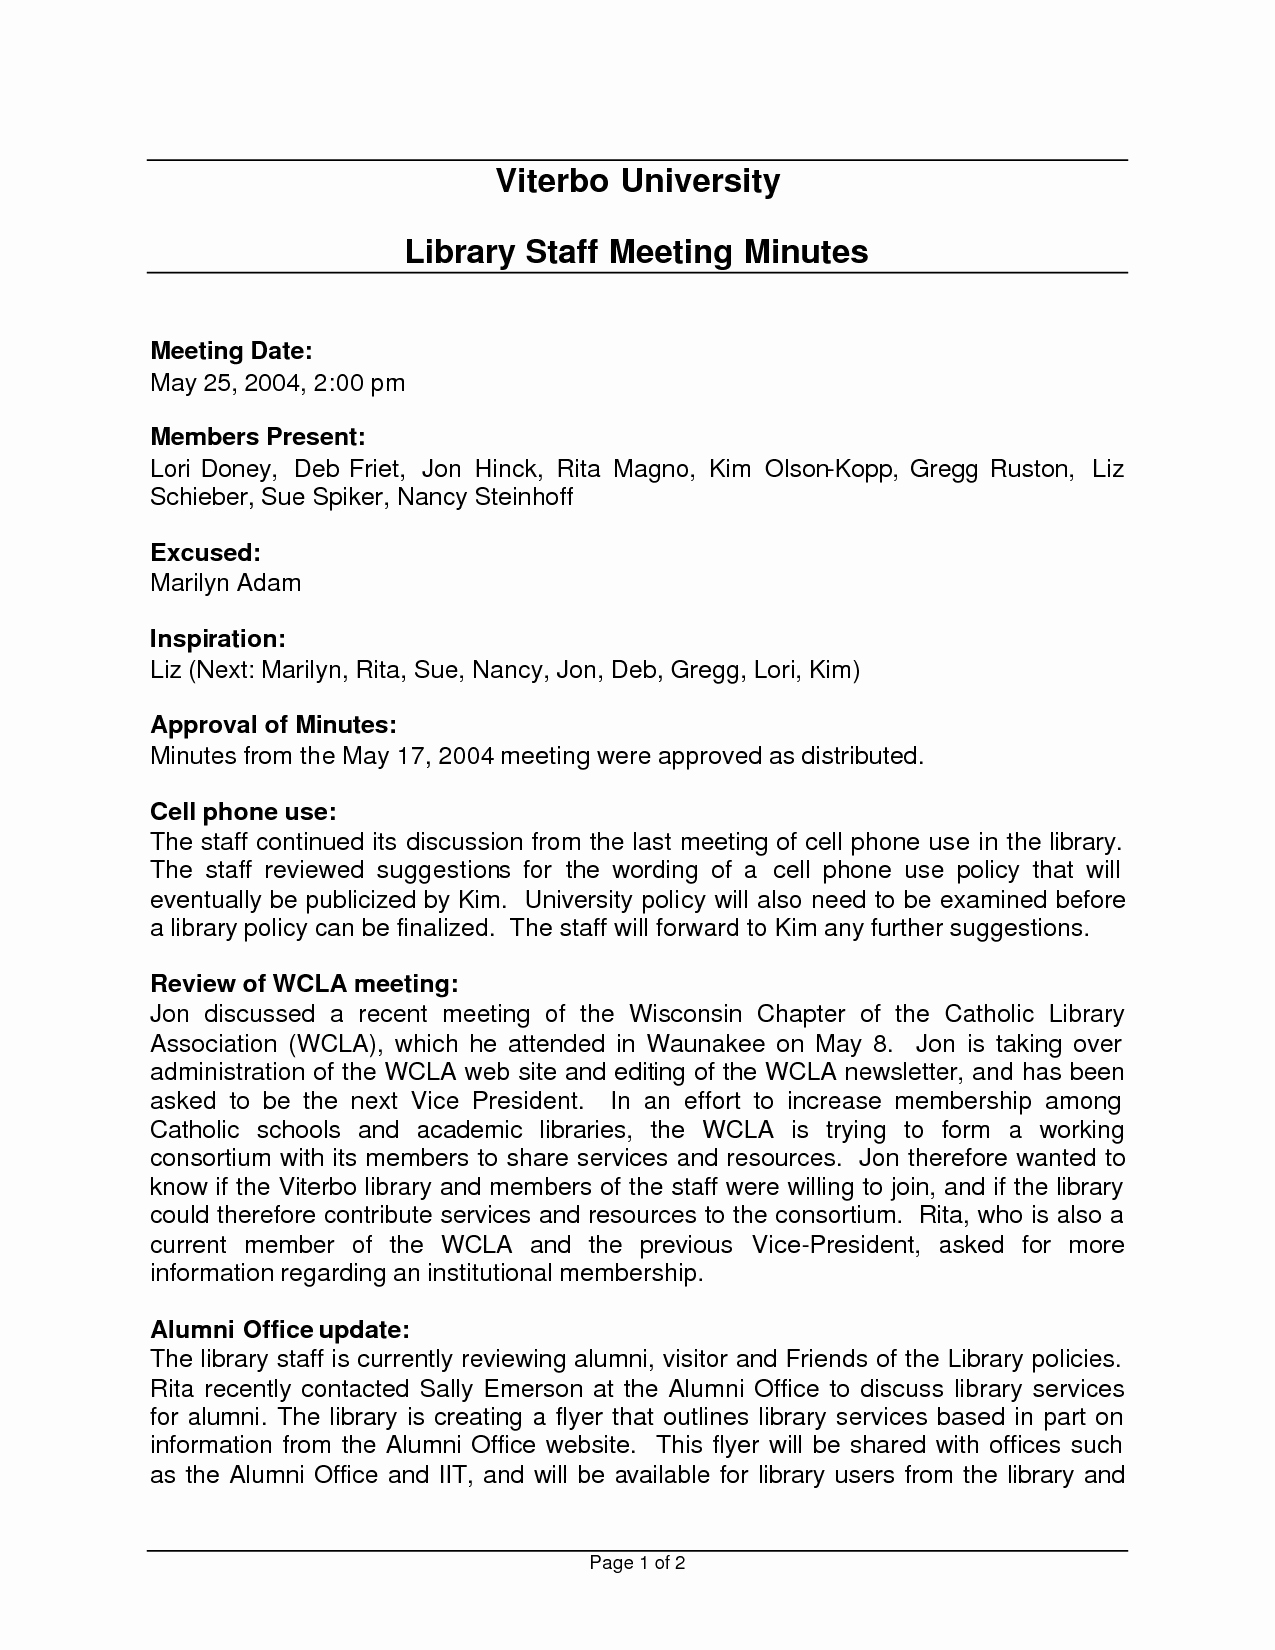 Minutes Of Meeting Email Fresh Best S Of Staff Meeting Minutes Template Email